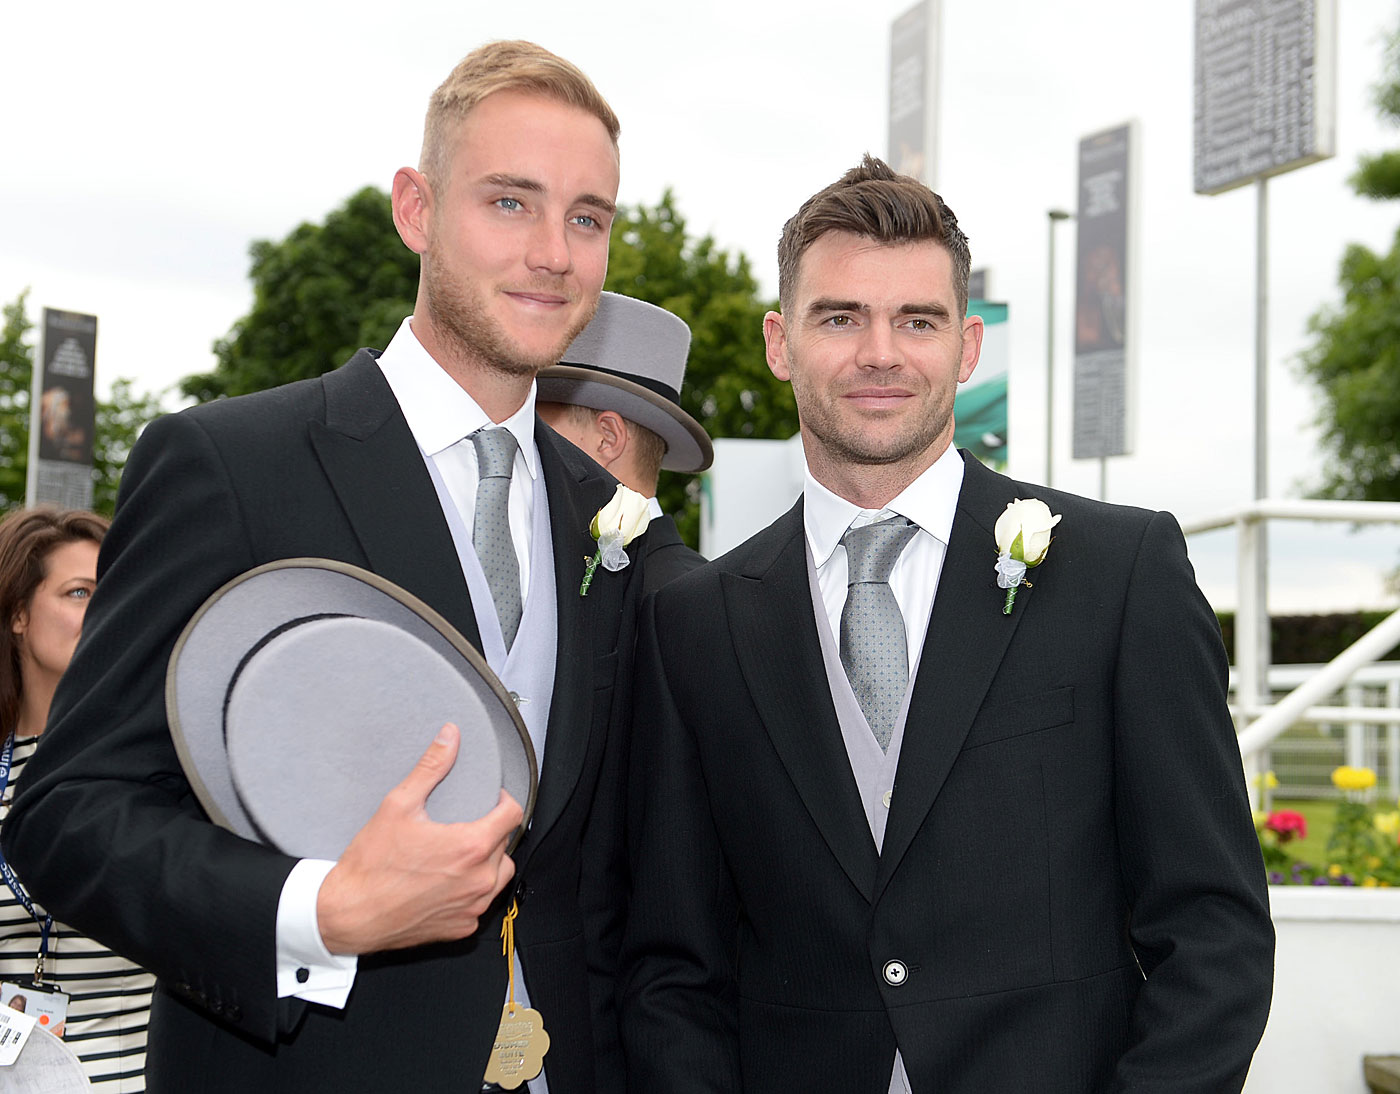 Jimmy's best man: Broad has always been second behind James Anderson